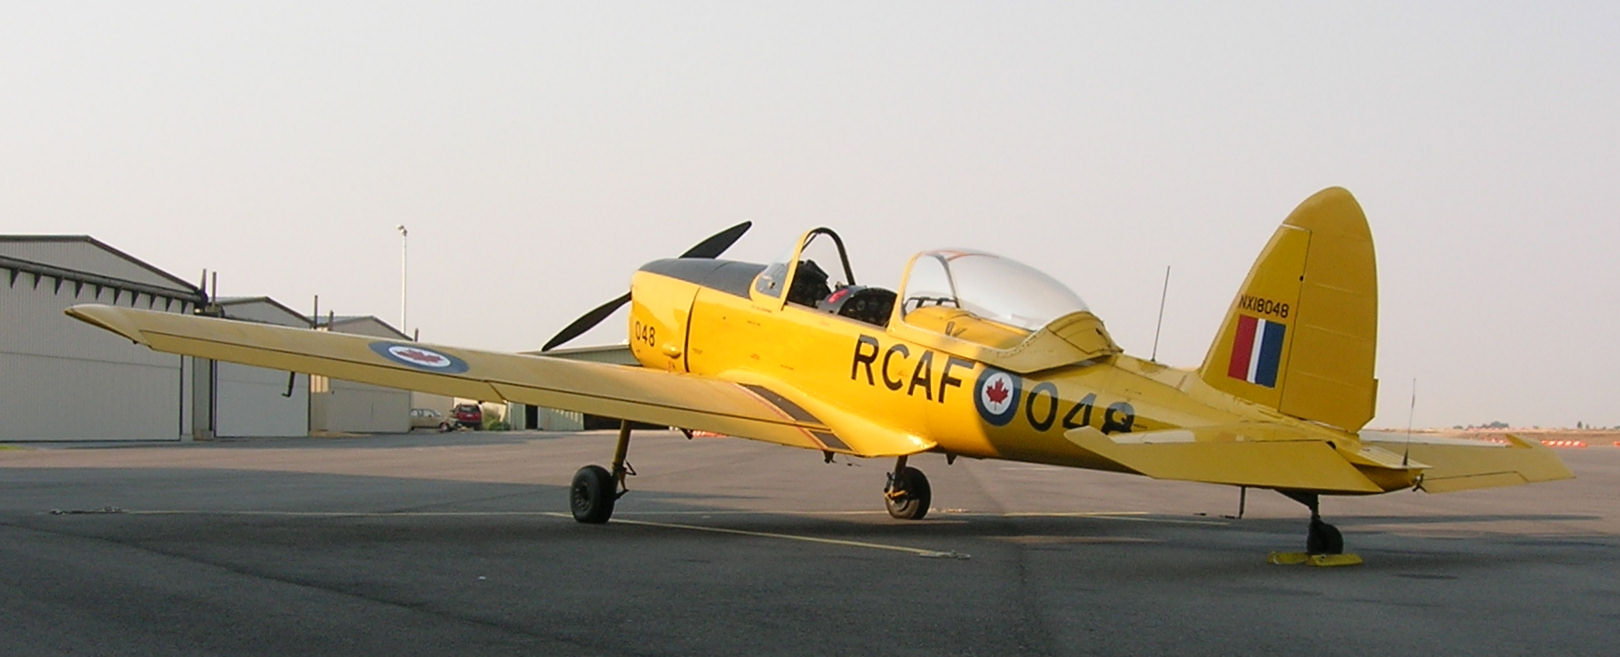 De Havilland Canada DHC-1 Chipmunk #6